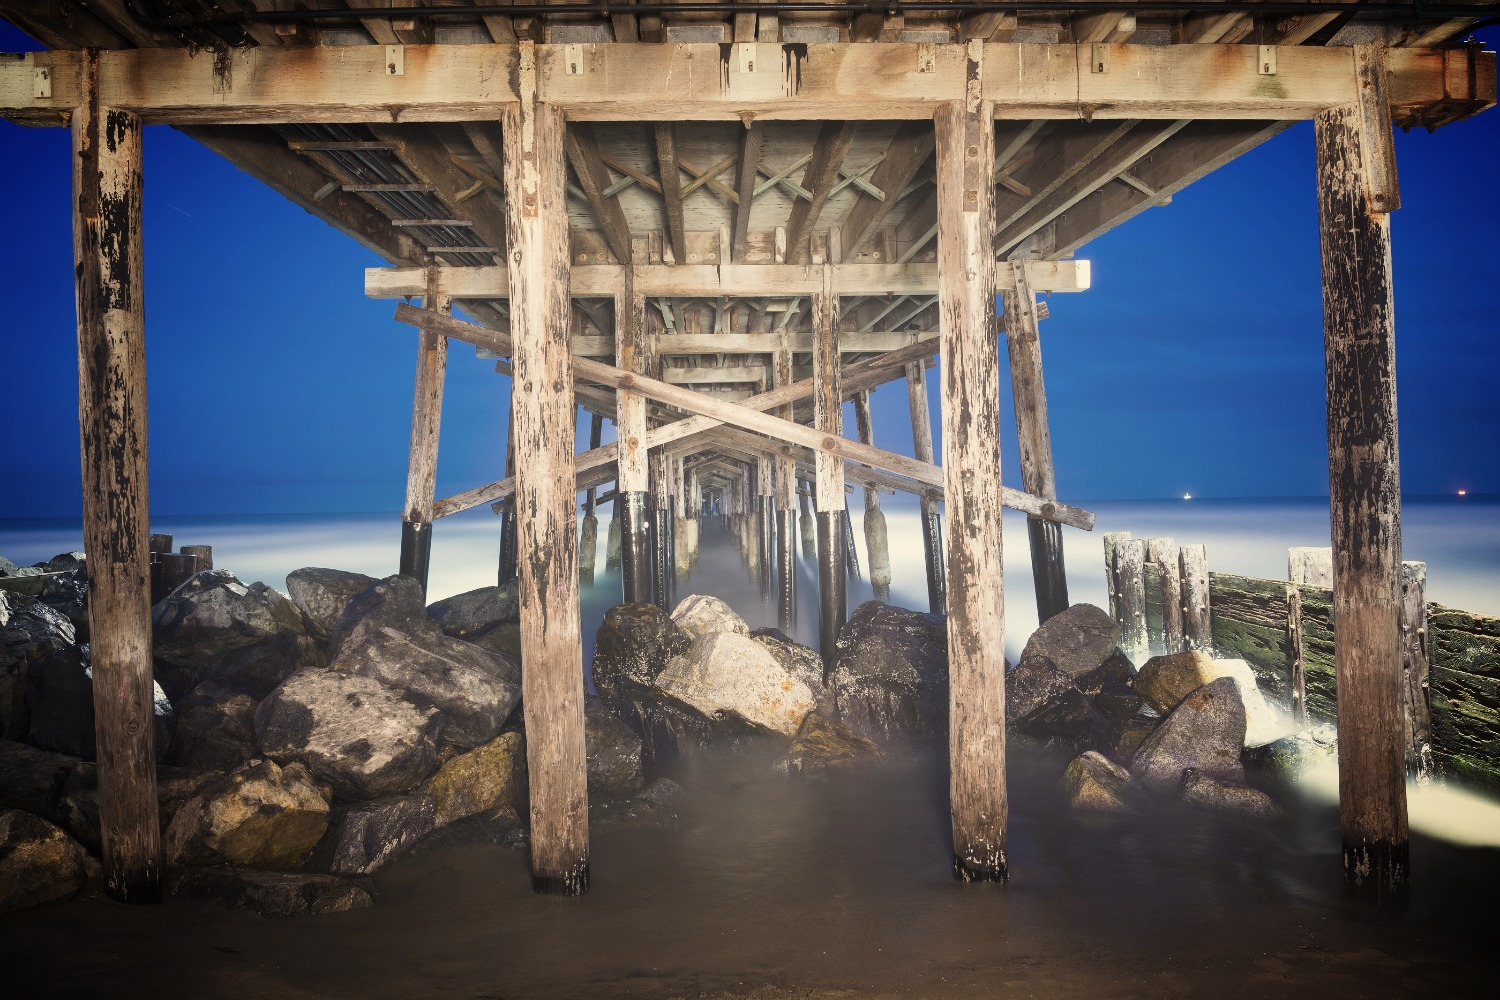 An image of the Balboa Pier in Orange County California early in the morning shows the structural de